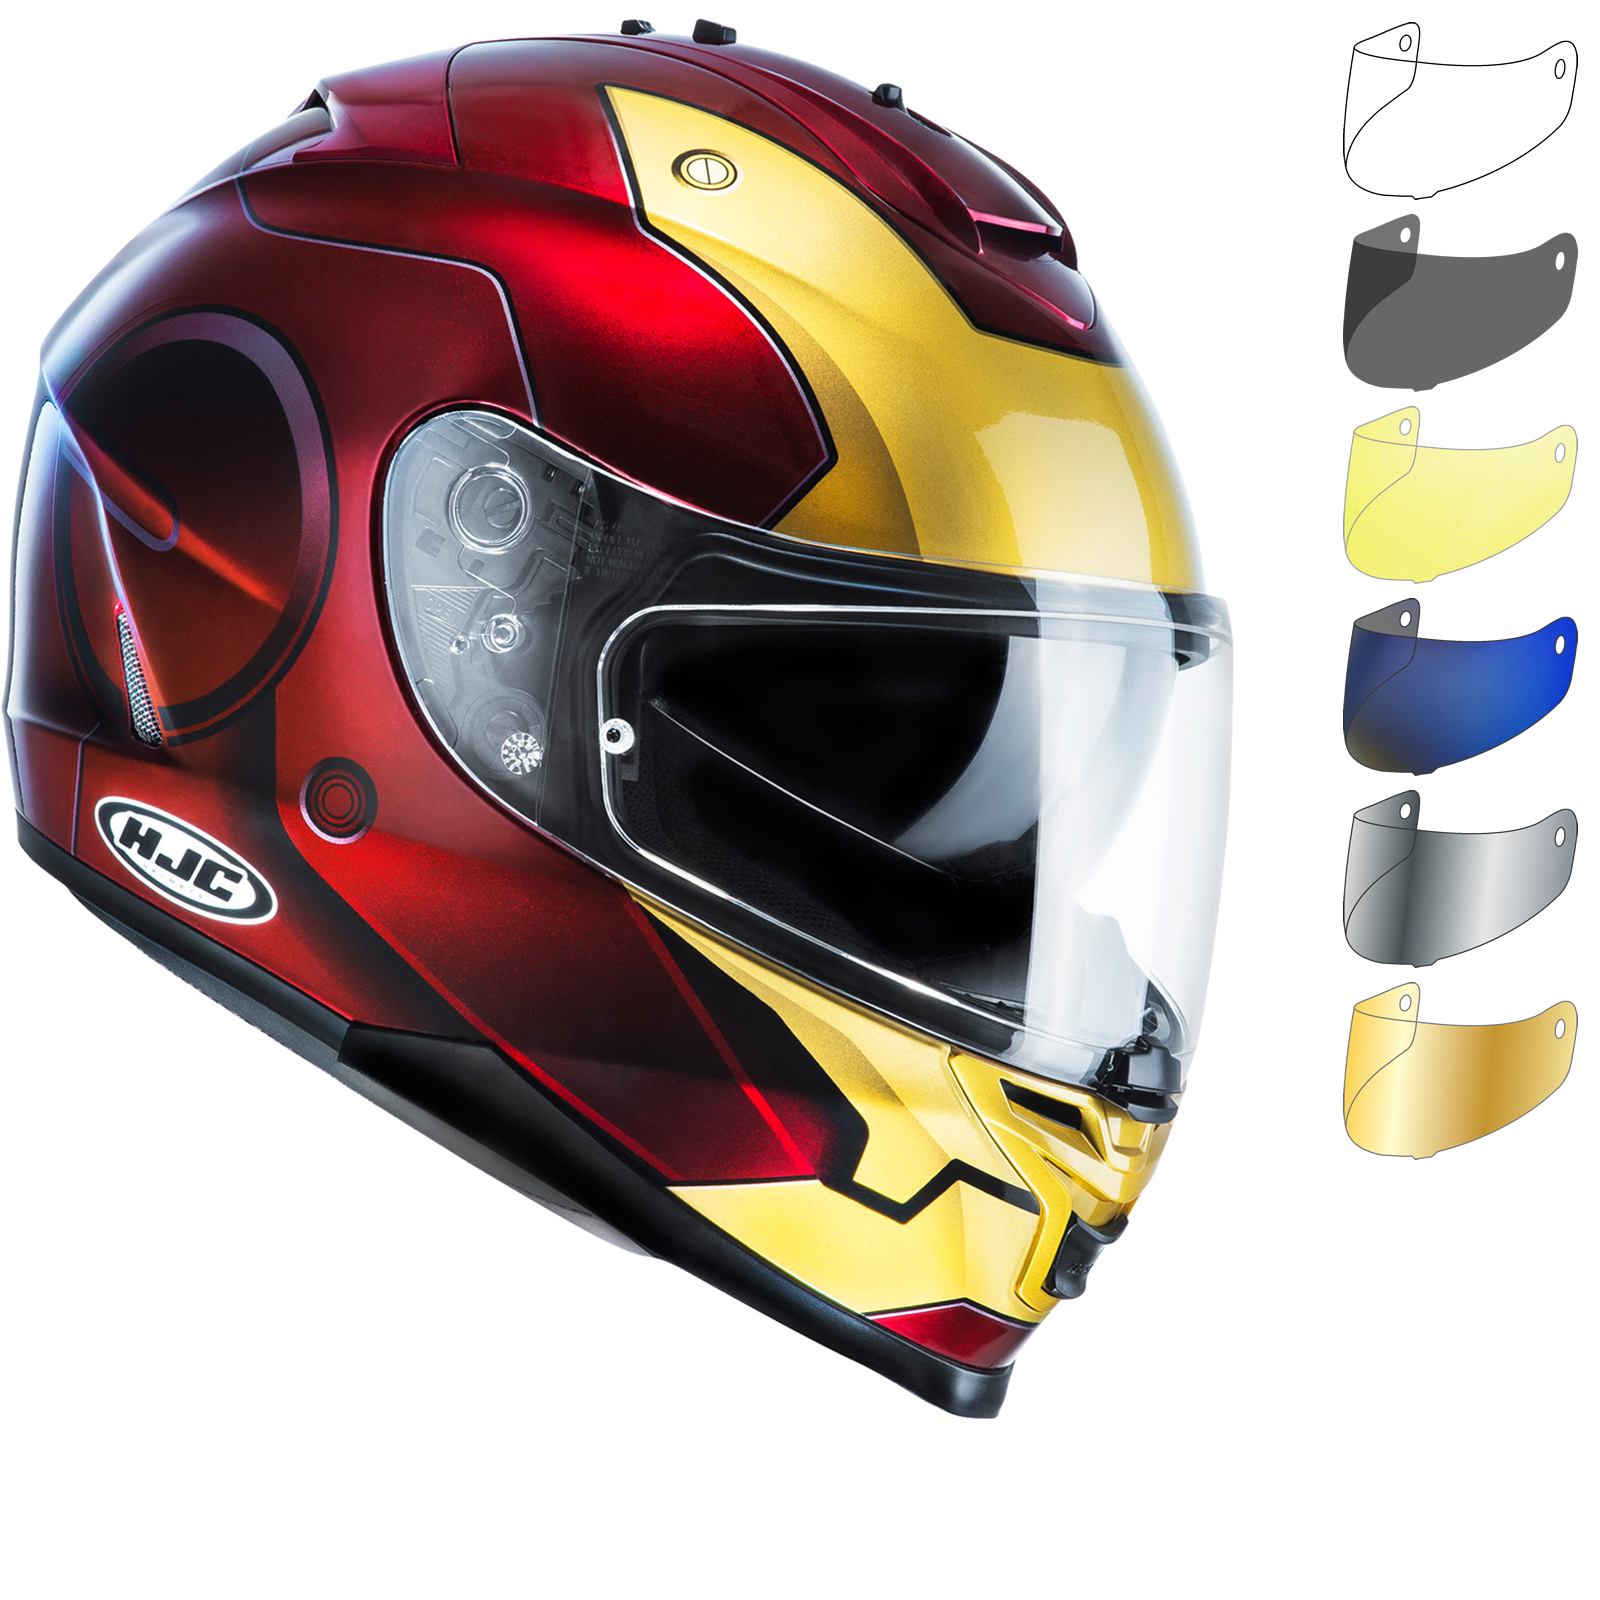 hjc is 17 iron man motorcycle helmet visor full face helmets. Black Bedroom Furniture Sets. Home Design Ideas